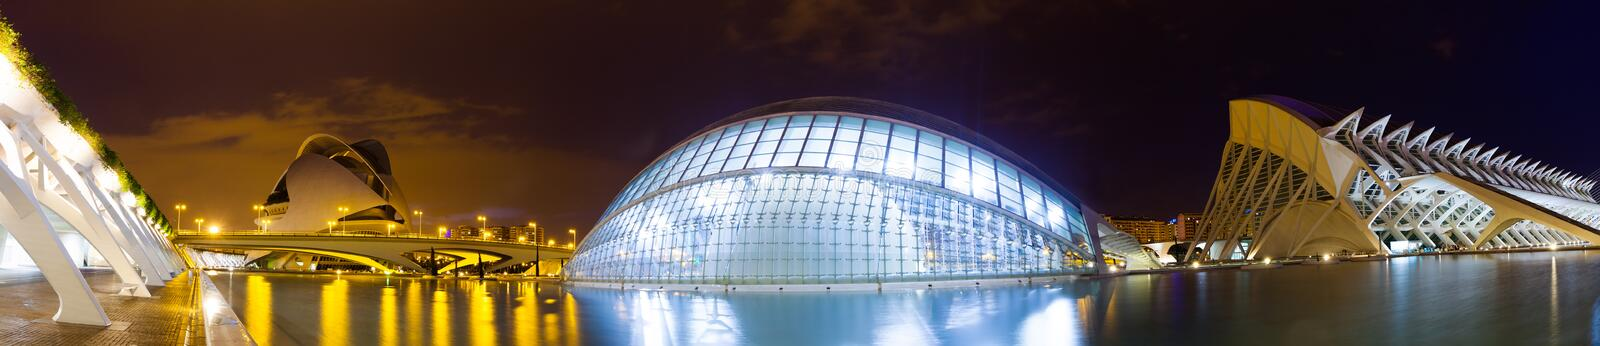 Panorama of City of Arts and Sciences. Valencia, Spain royalty free stock images